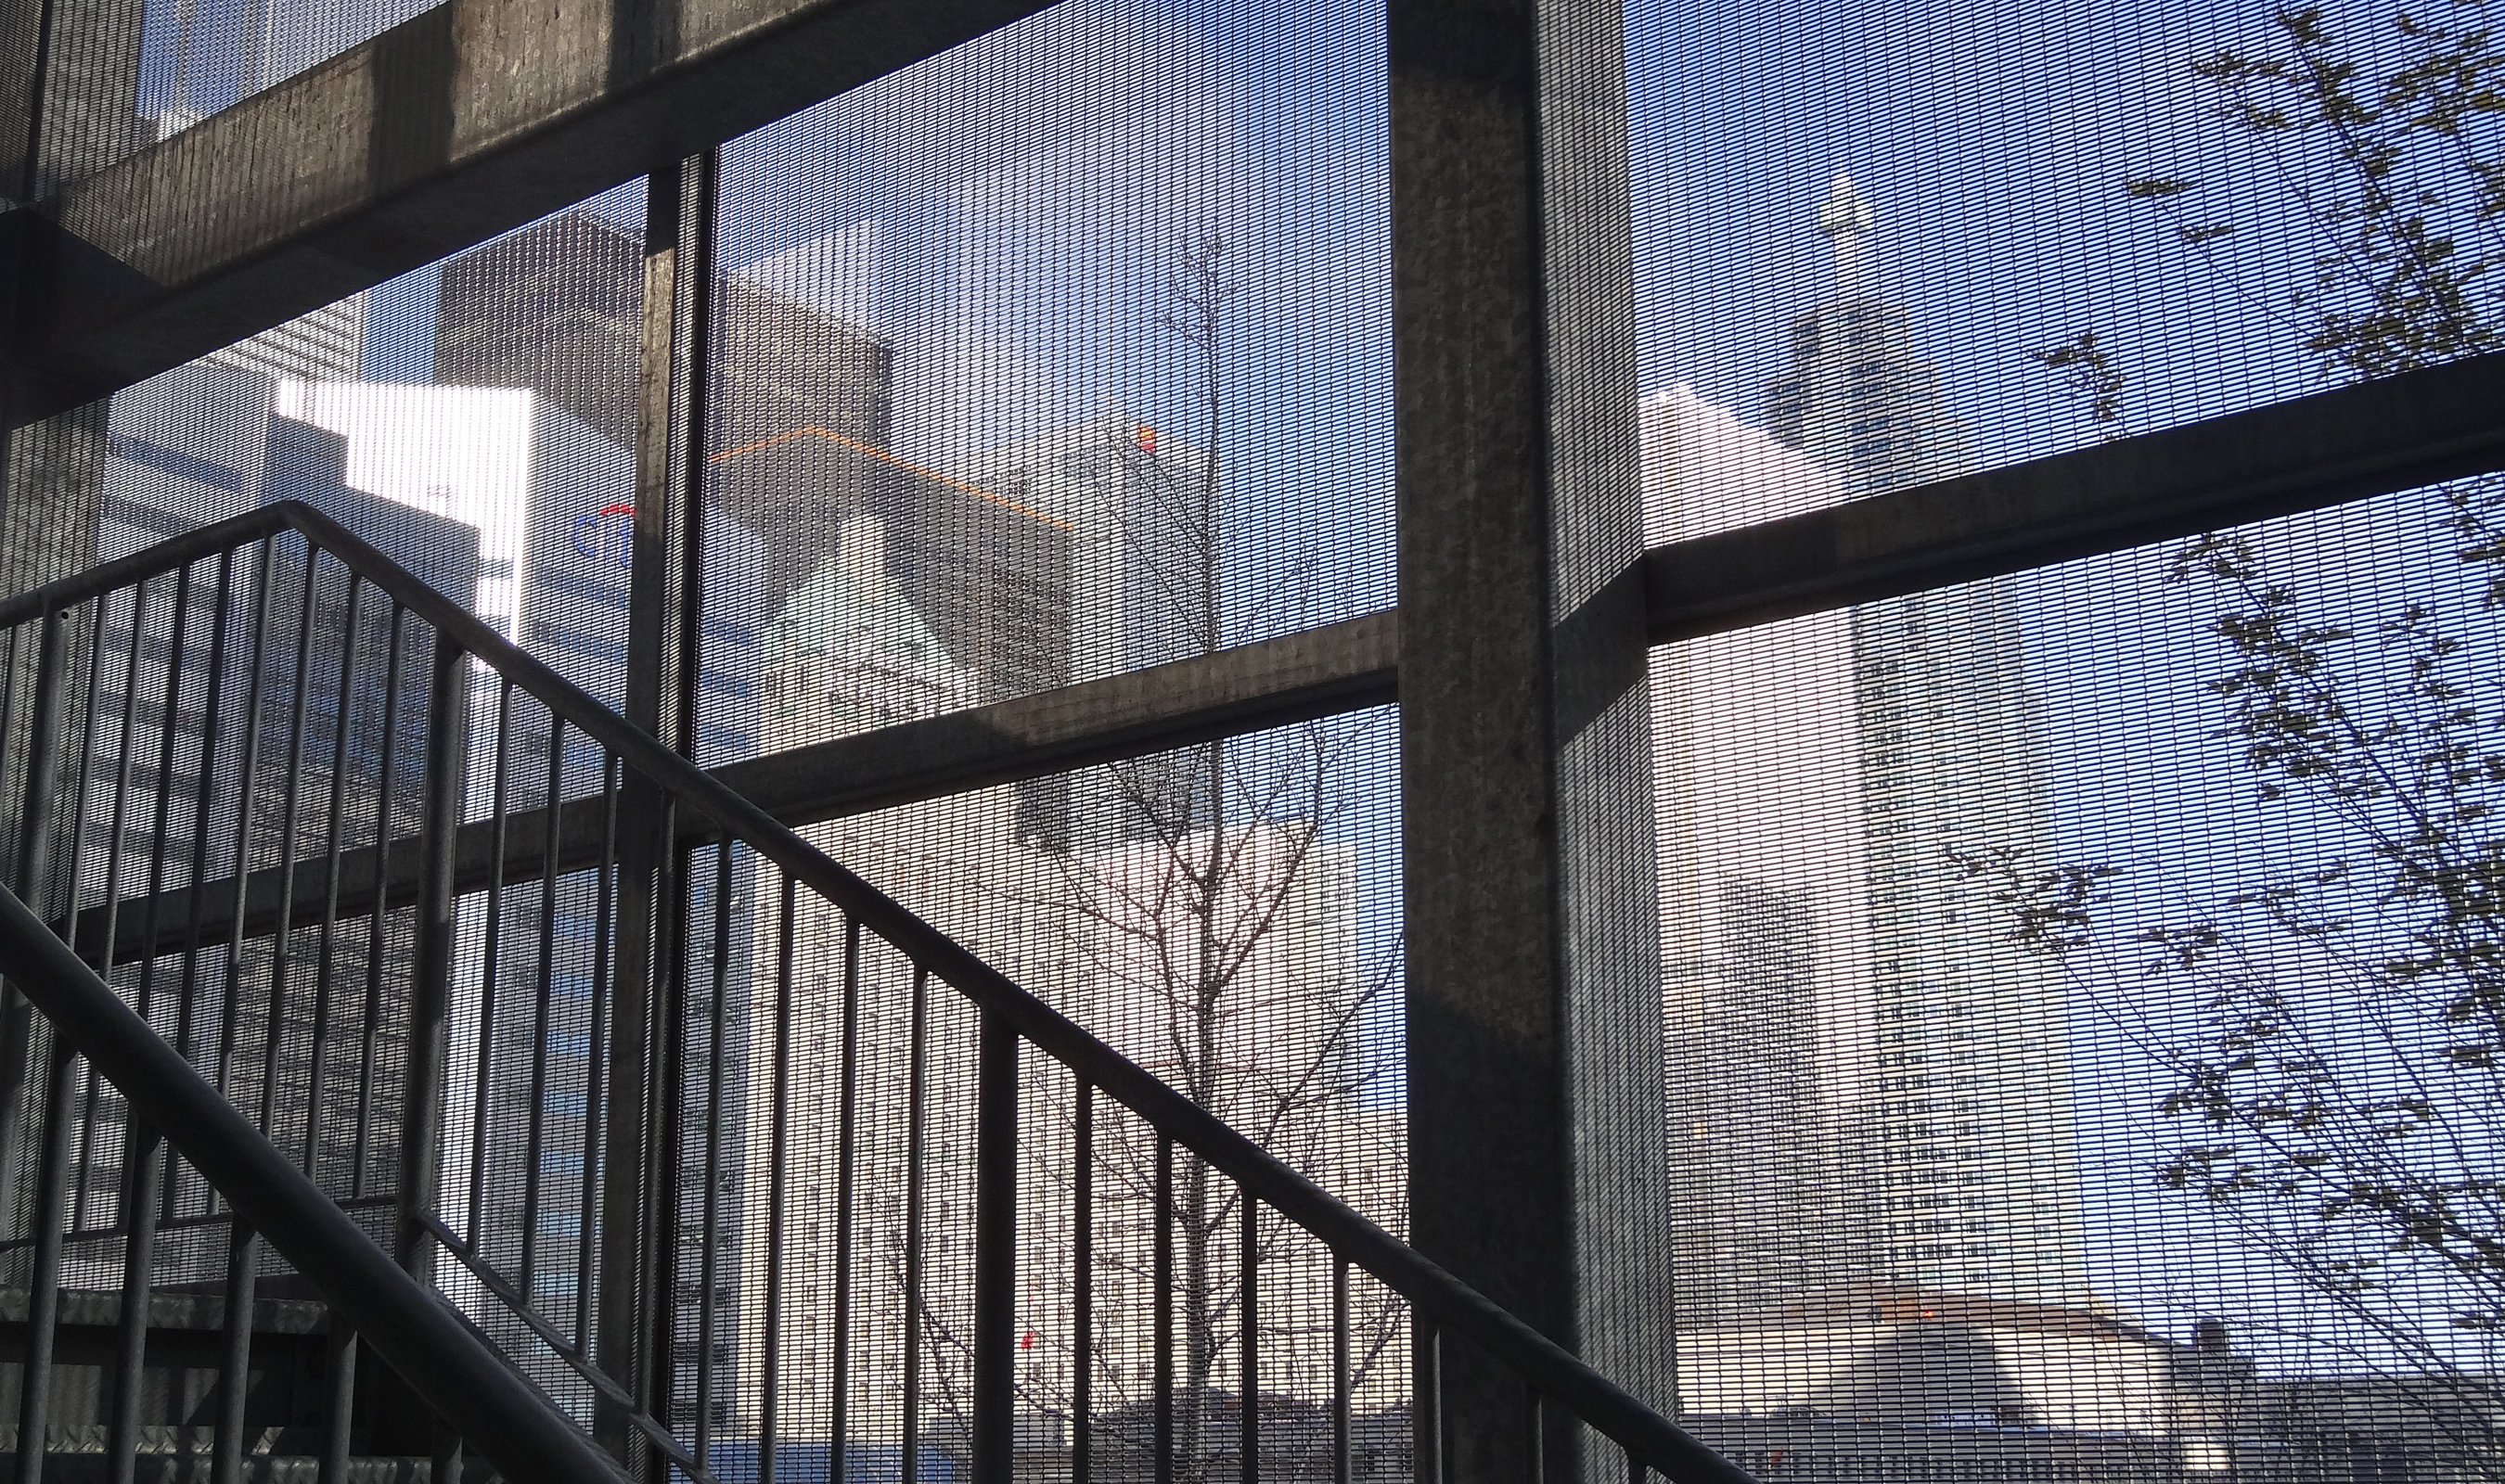 The stainless steel LPZ-62 wire mesh panels create a semi-transparent skin to provide views of the city.